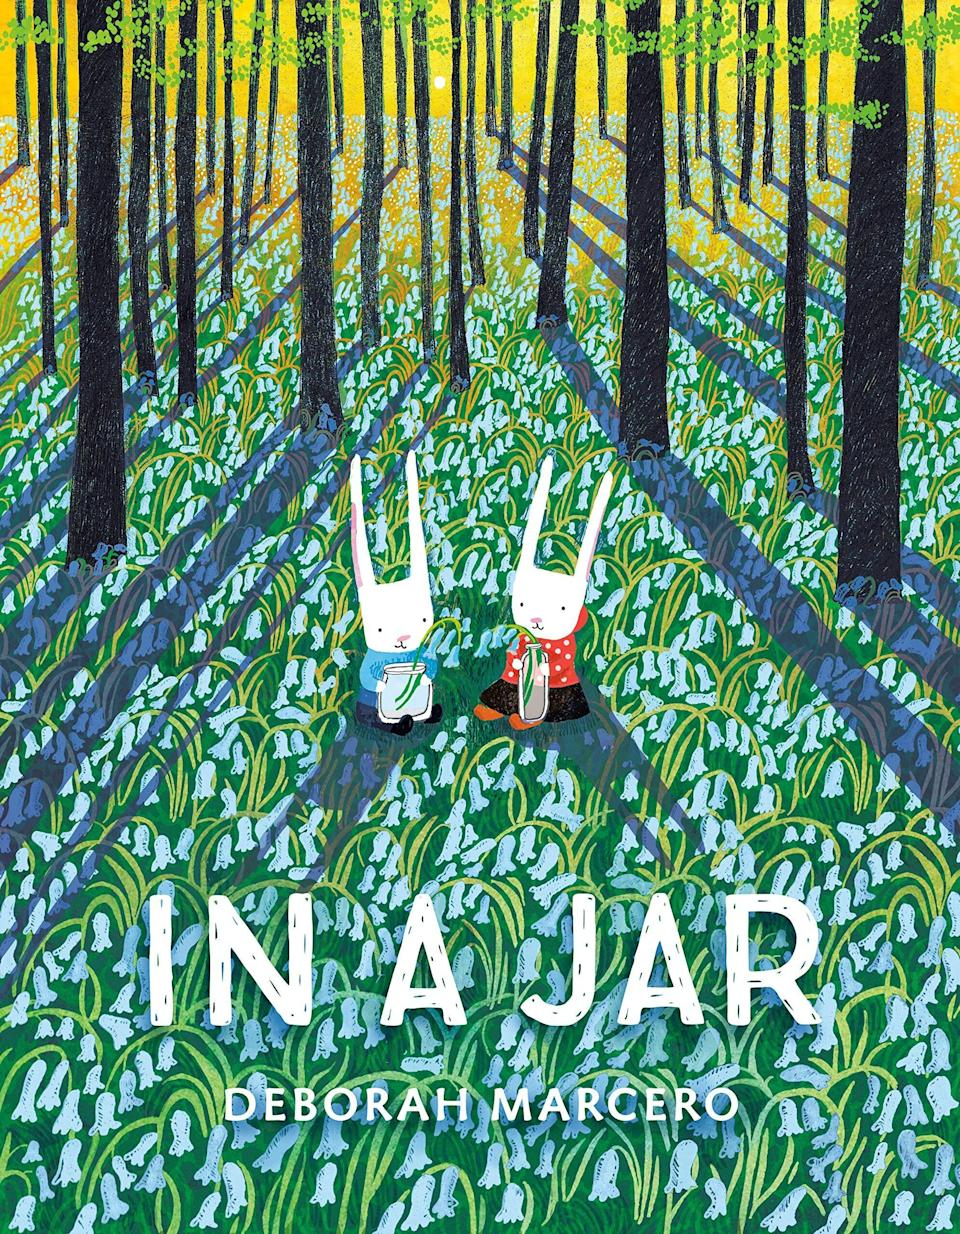 """""""In A Jar"""" focuses on cherishing memories, keeping friendships alive and coping with loneliness. <i>(Available <a href=""""https://www.amazon.com/Jar-Deborah-Marcero/dp/0525514597"""" target=""""_blank"""" rel=""""noopener noreferrer"""">here</a>.)</i>"""